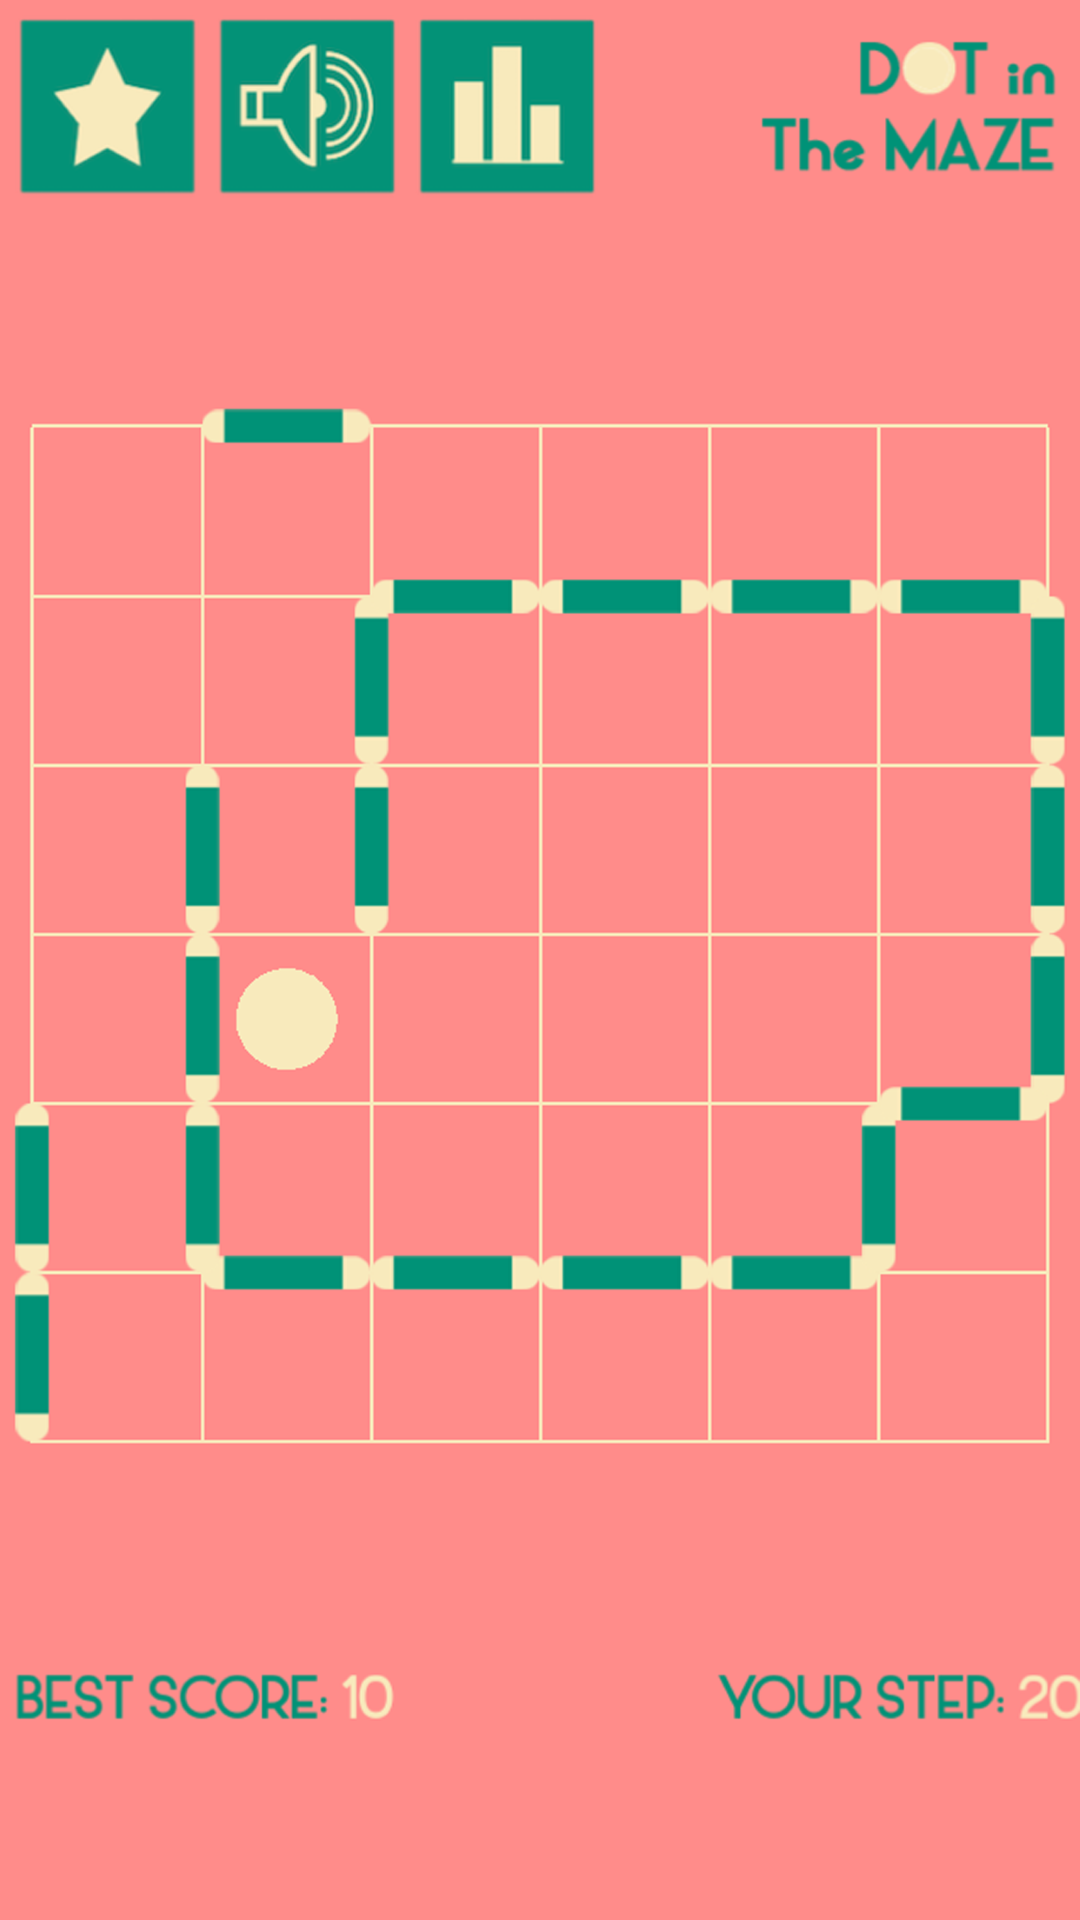 Dot In The Maze